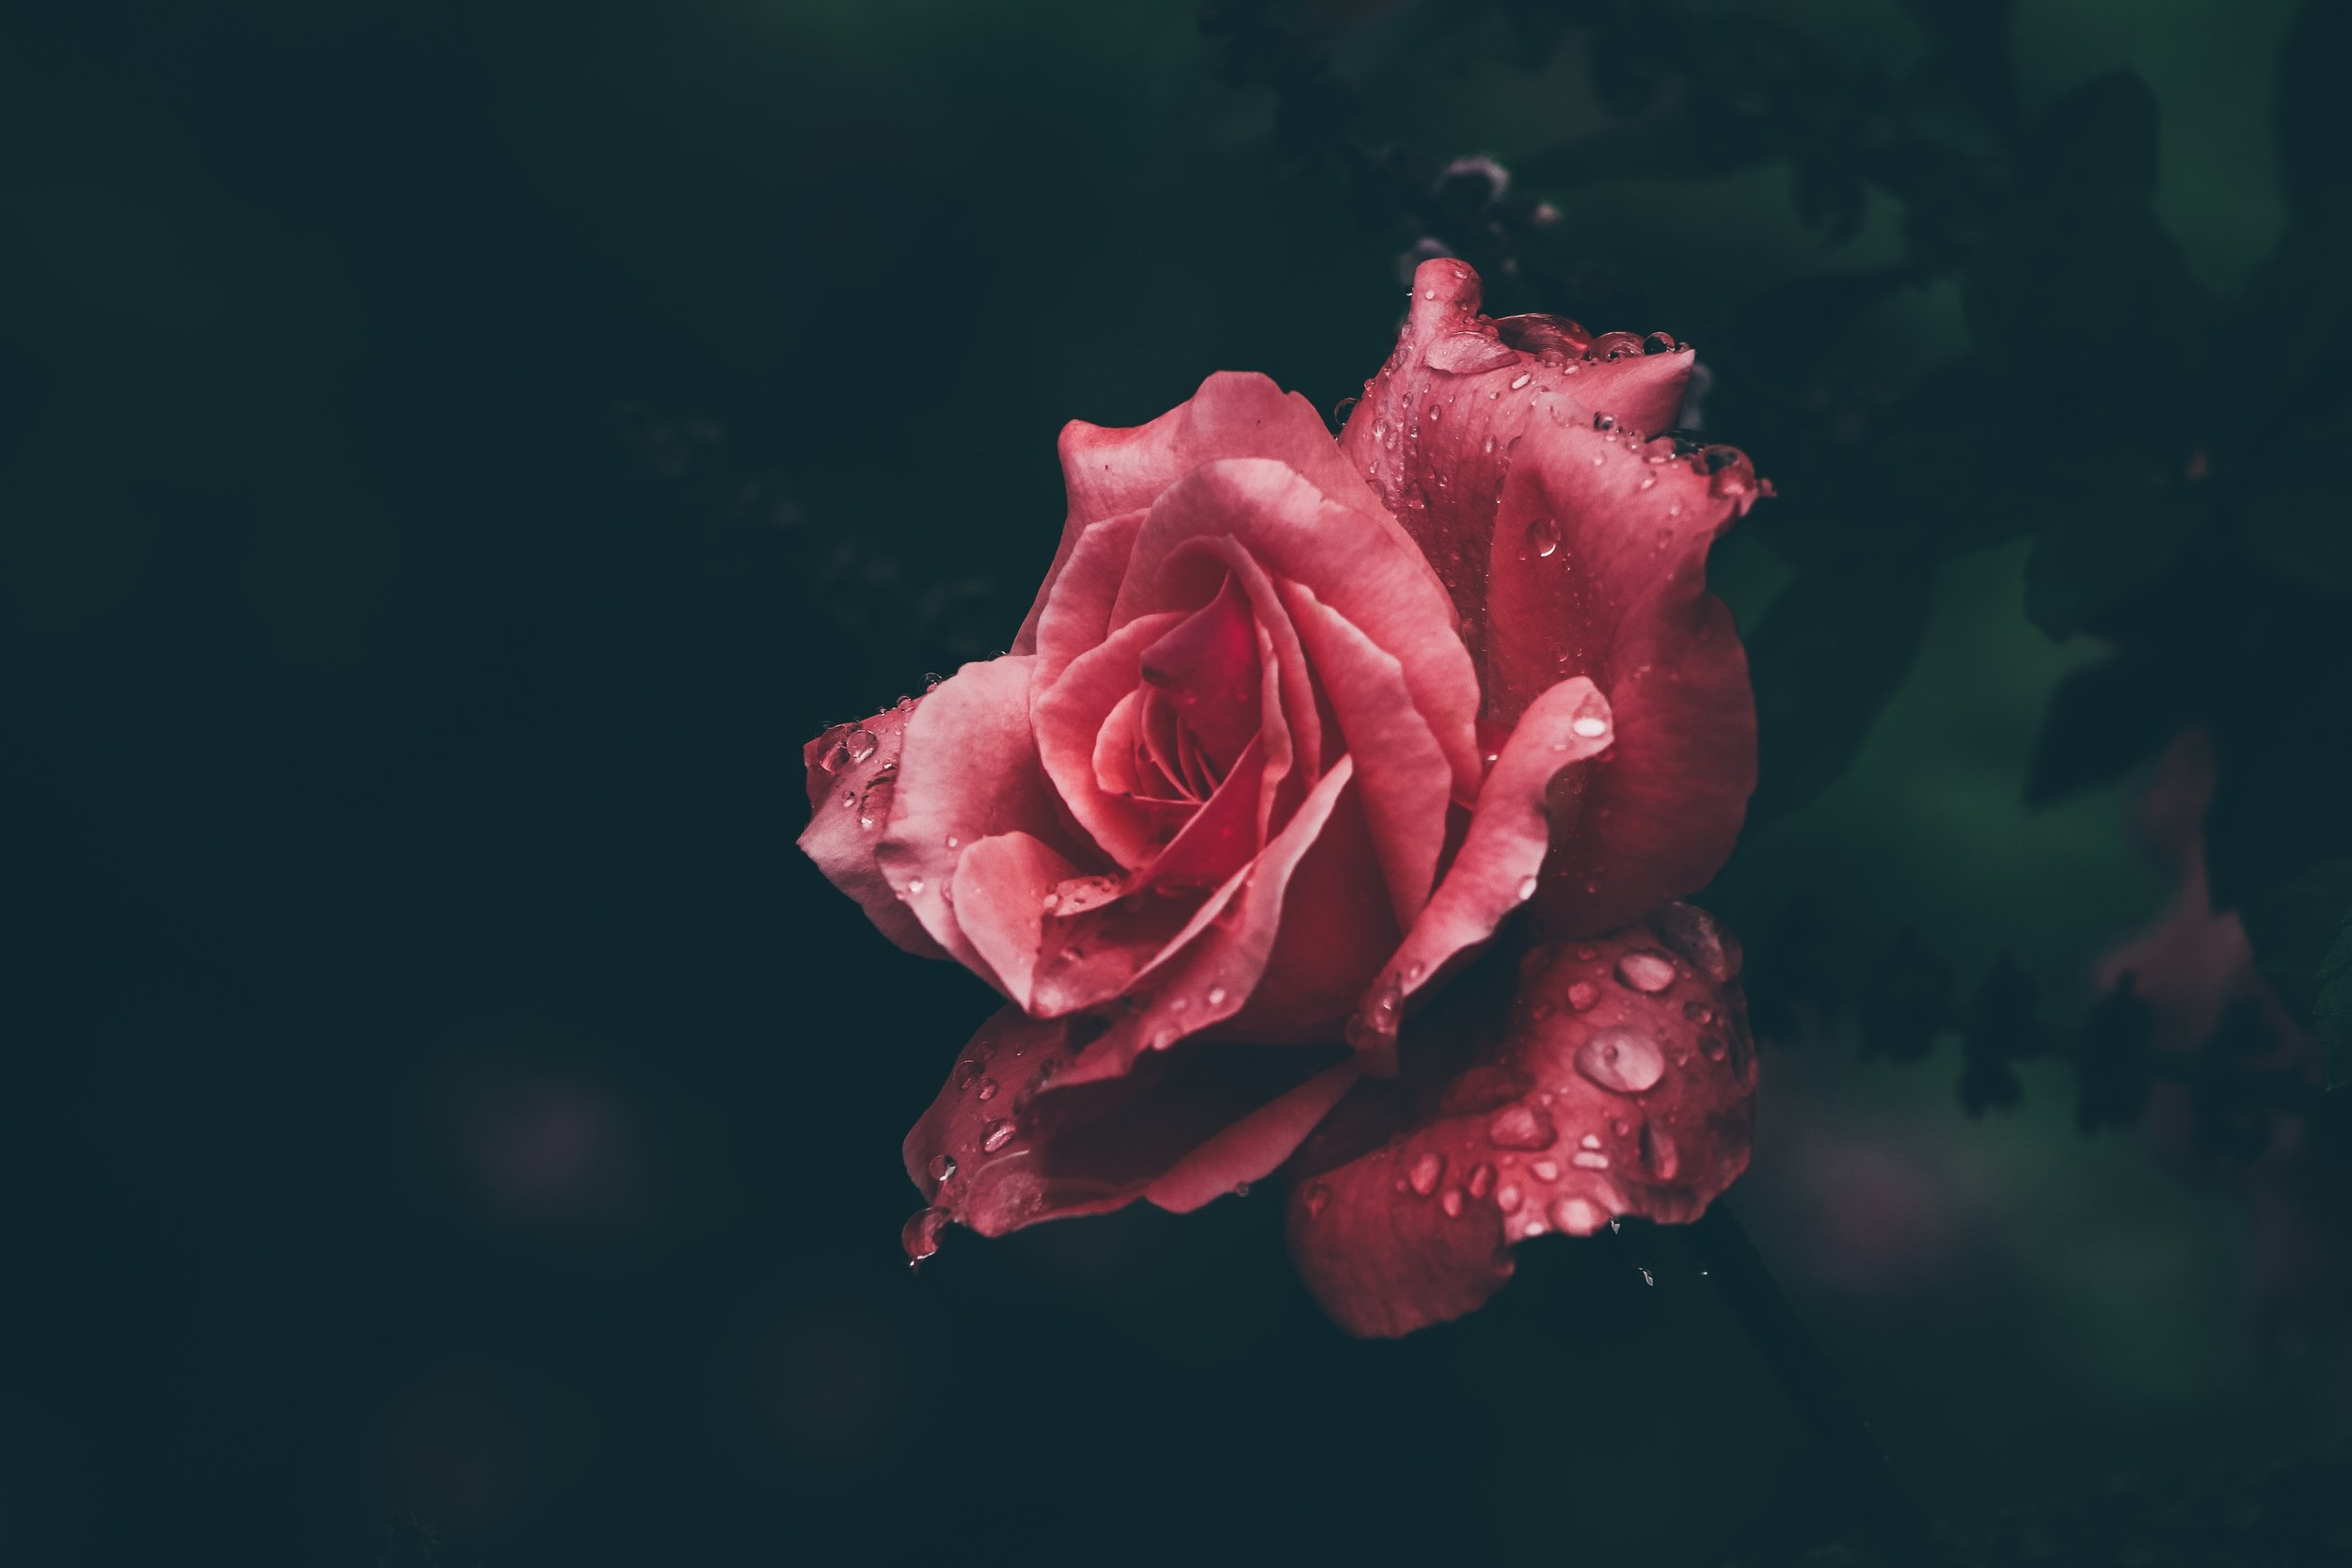 A rose by any other name would smell as sweet.